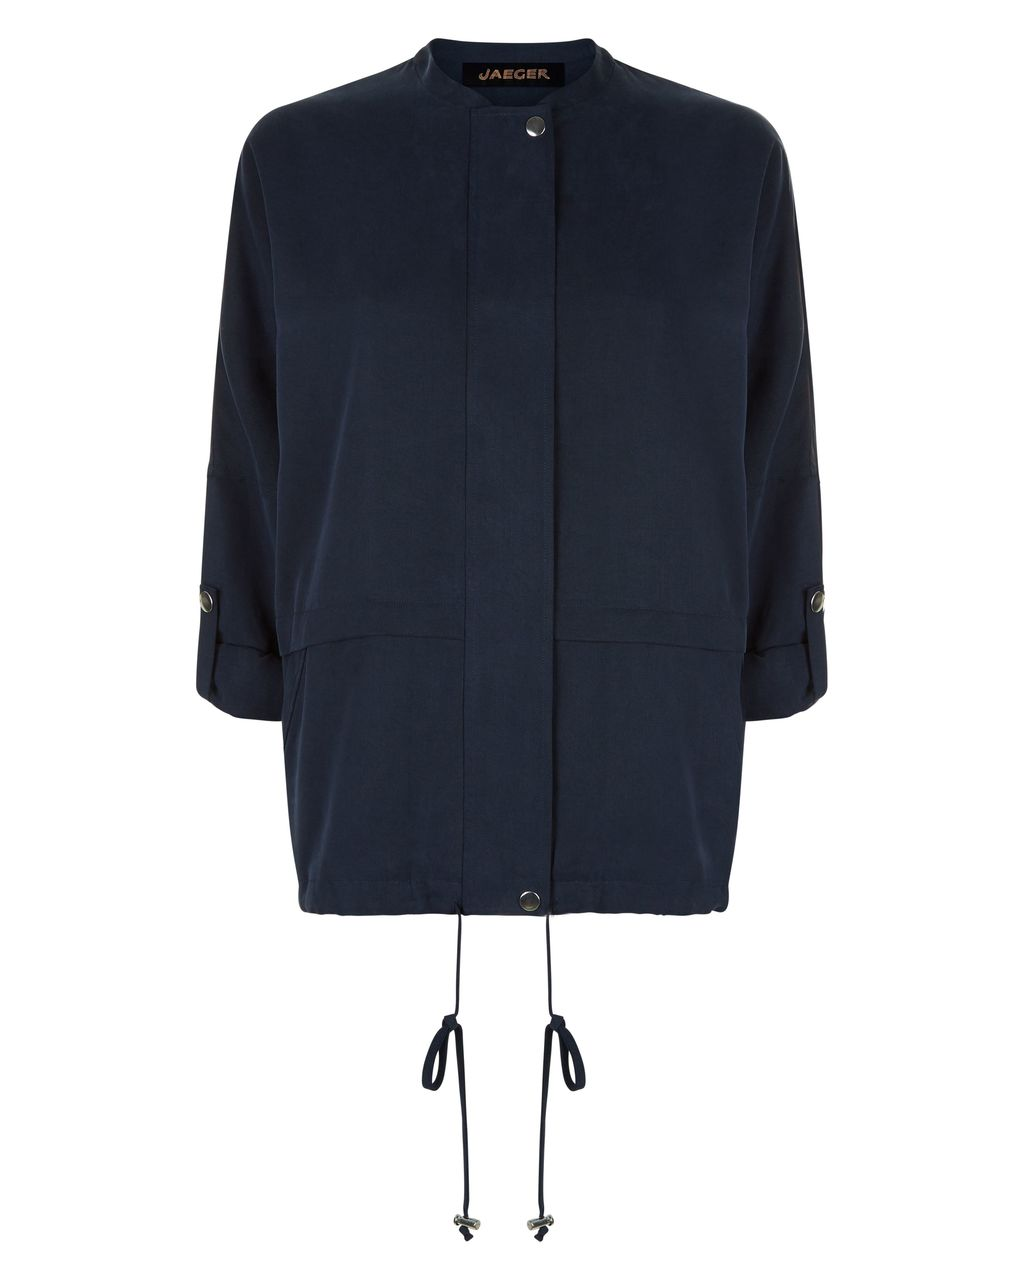 Slouchy Jacket, Navy - pattern: plain; style: single breasted blazer; length: below the bottom; collar: high neck; predominant colour: navy; occasions: casual; fit: straight cut (boxy); fibres: polyester/polyamide - 100%; sleeve length: long sleeve; sleeve style: standard; collar break: high; pattern type: fabric; texture group: other - light to midweight; season: s/s 2016; wardrobe: basic